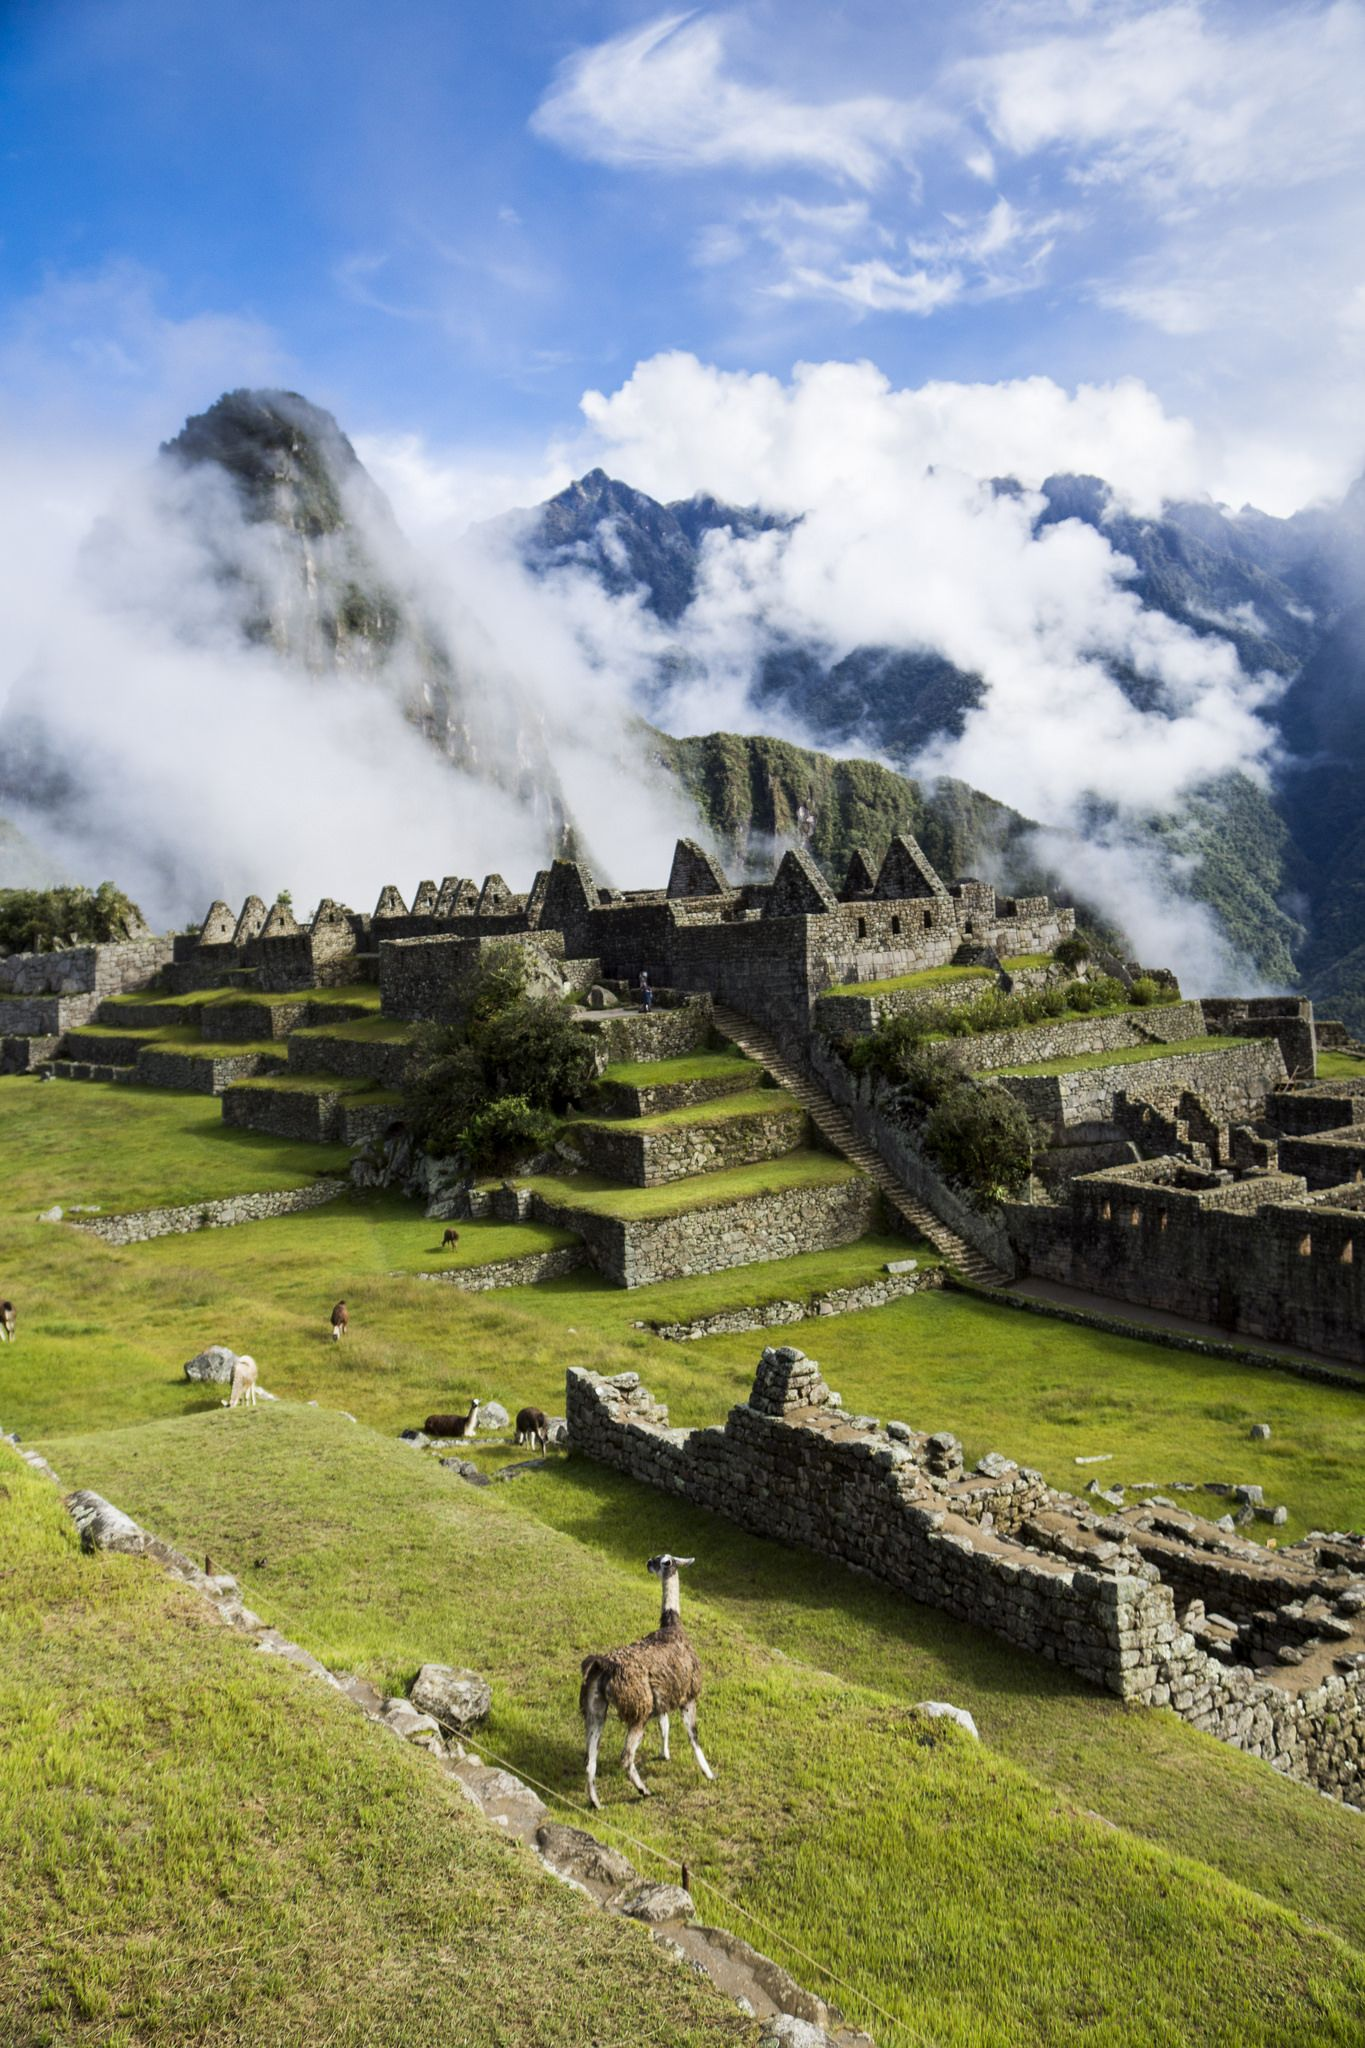 Machu Picchu up in the clouds / Peru (by Tobias Mayr) - See more at: http://visitheworld.tumblr.com/#sthash.X5N6V6re.dpuf